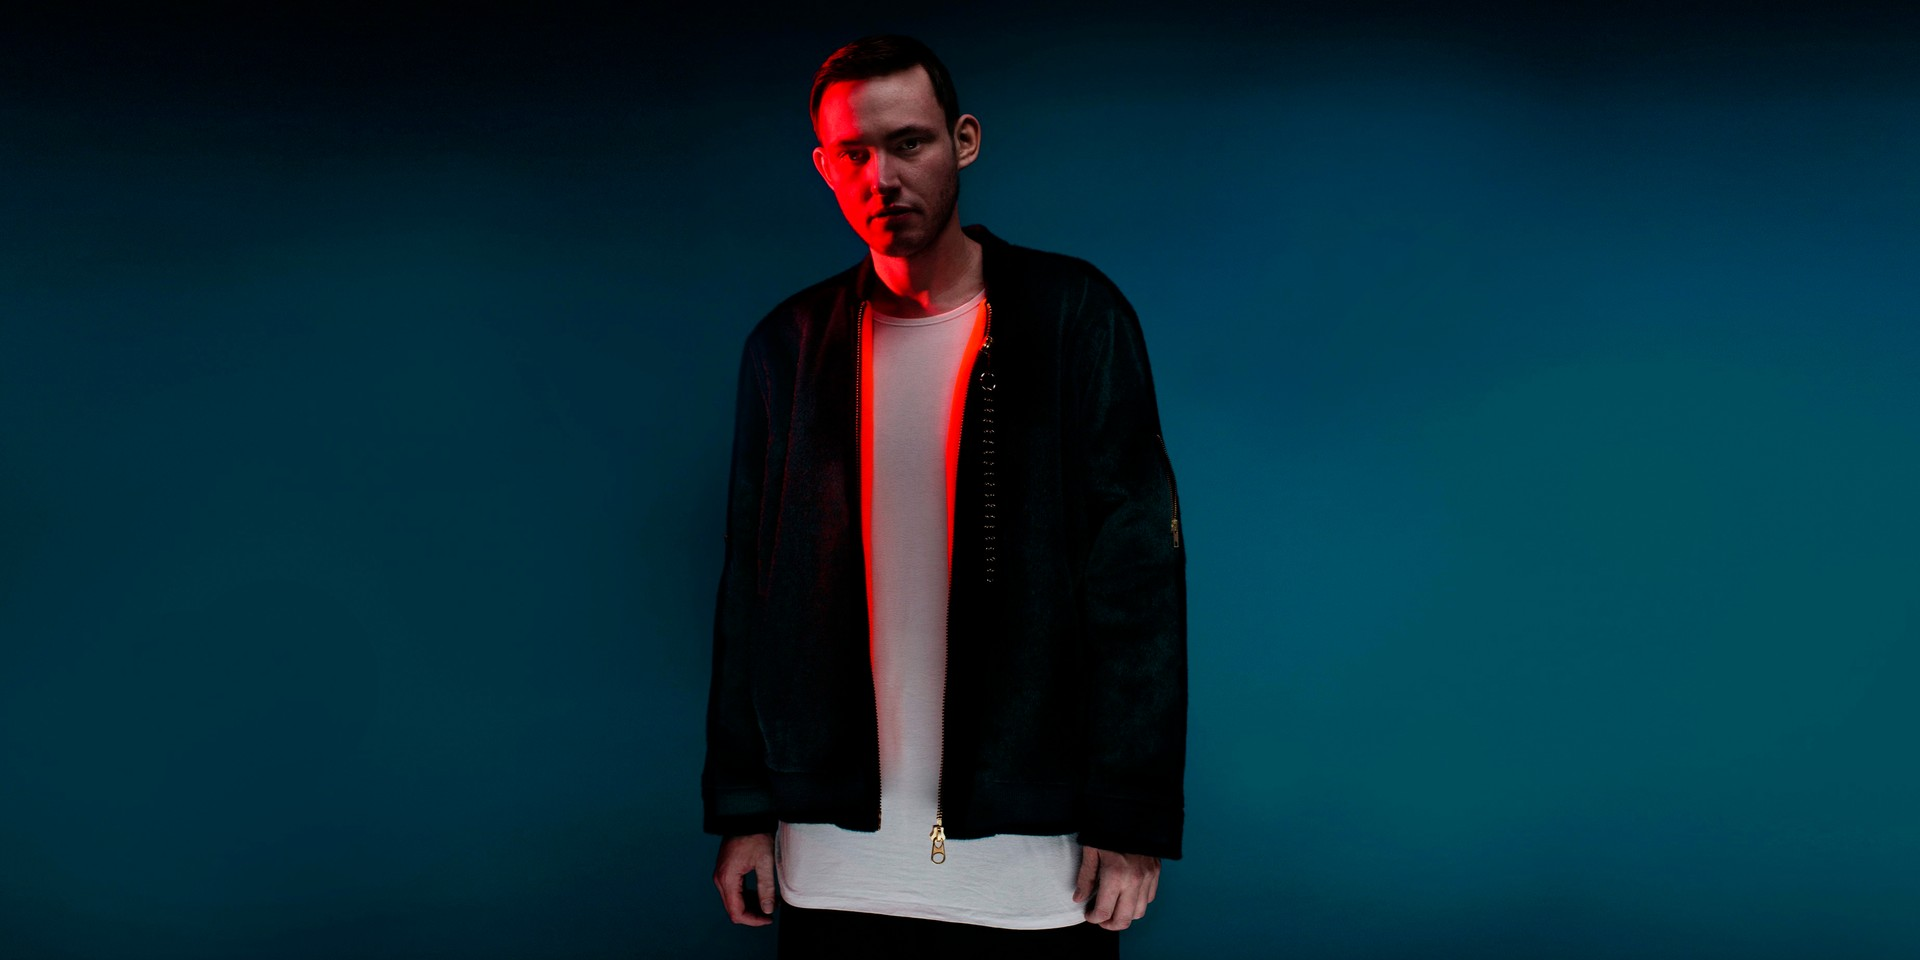 Cherry Discotheque brings Hudson Mohawke back to Singapore